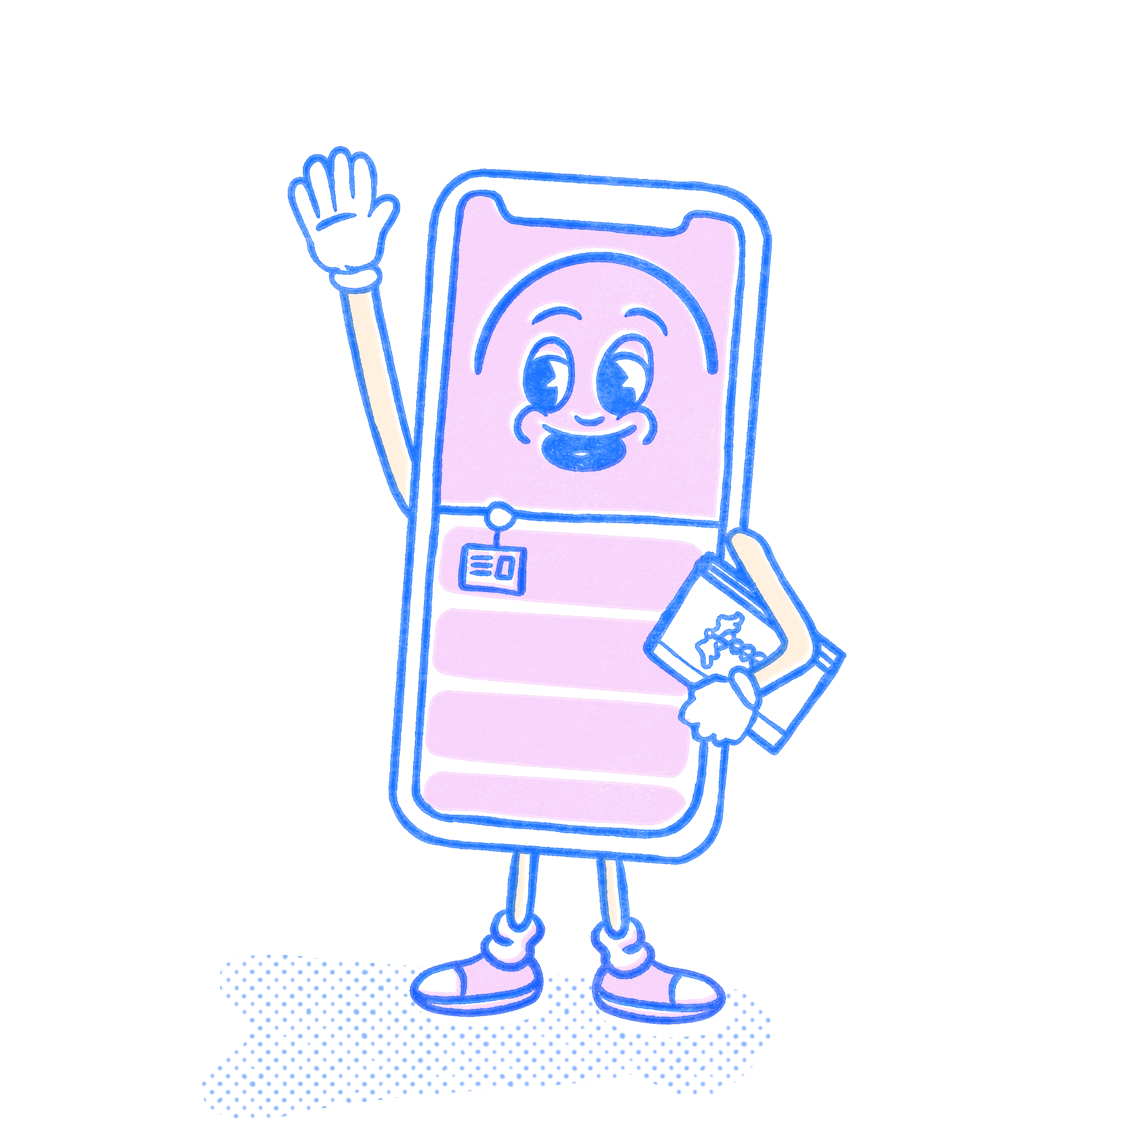 Nursing School Pocket Prep mascot raising their hand and holding a book. Illustration.